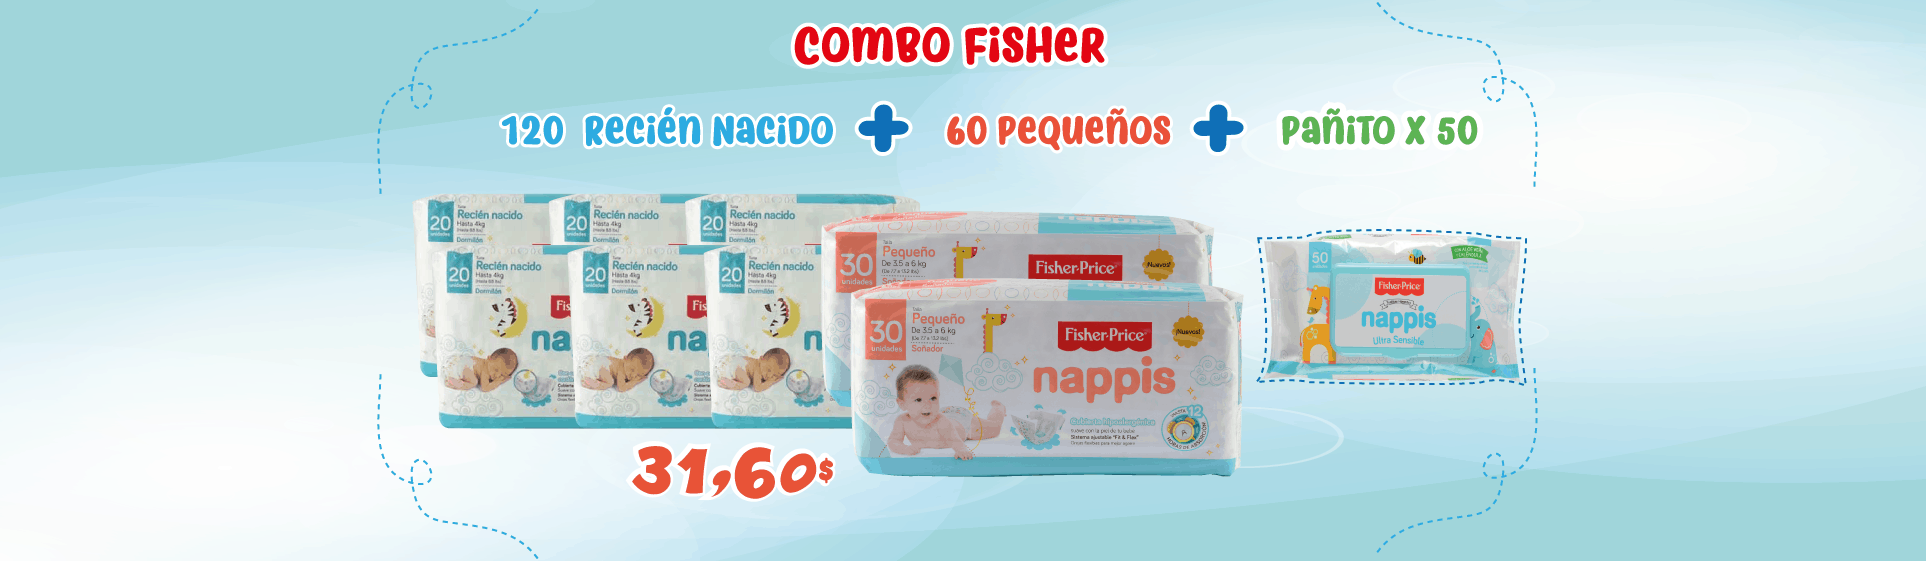 nappis fisher price